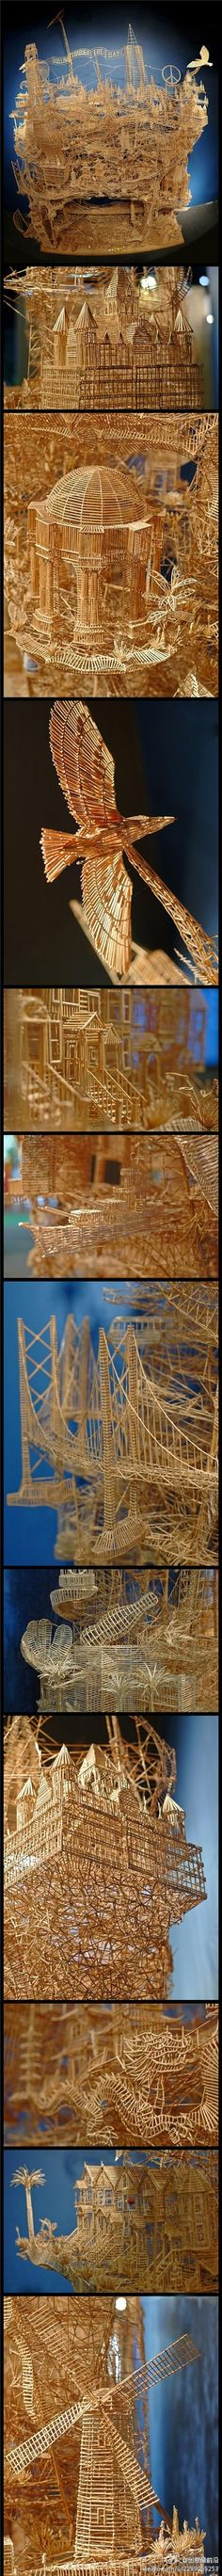 1 person, 35 years, 100,000 toothpicks